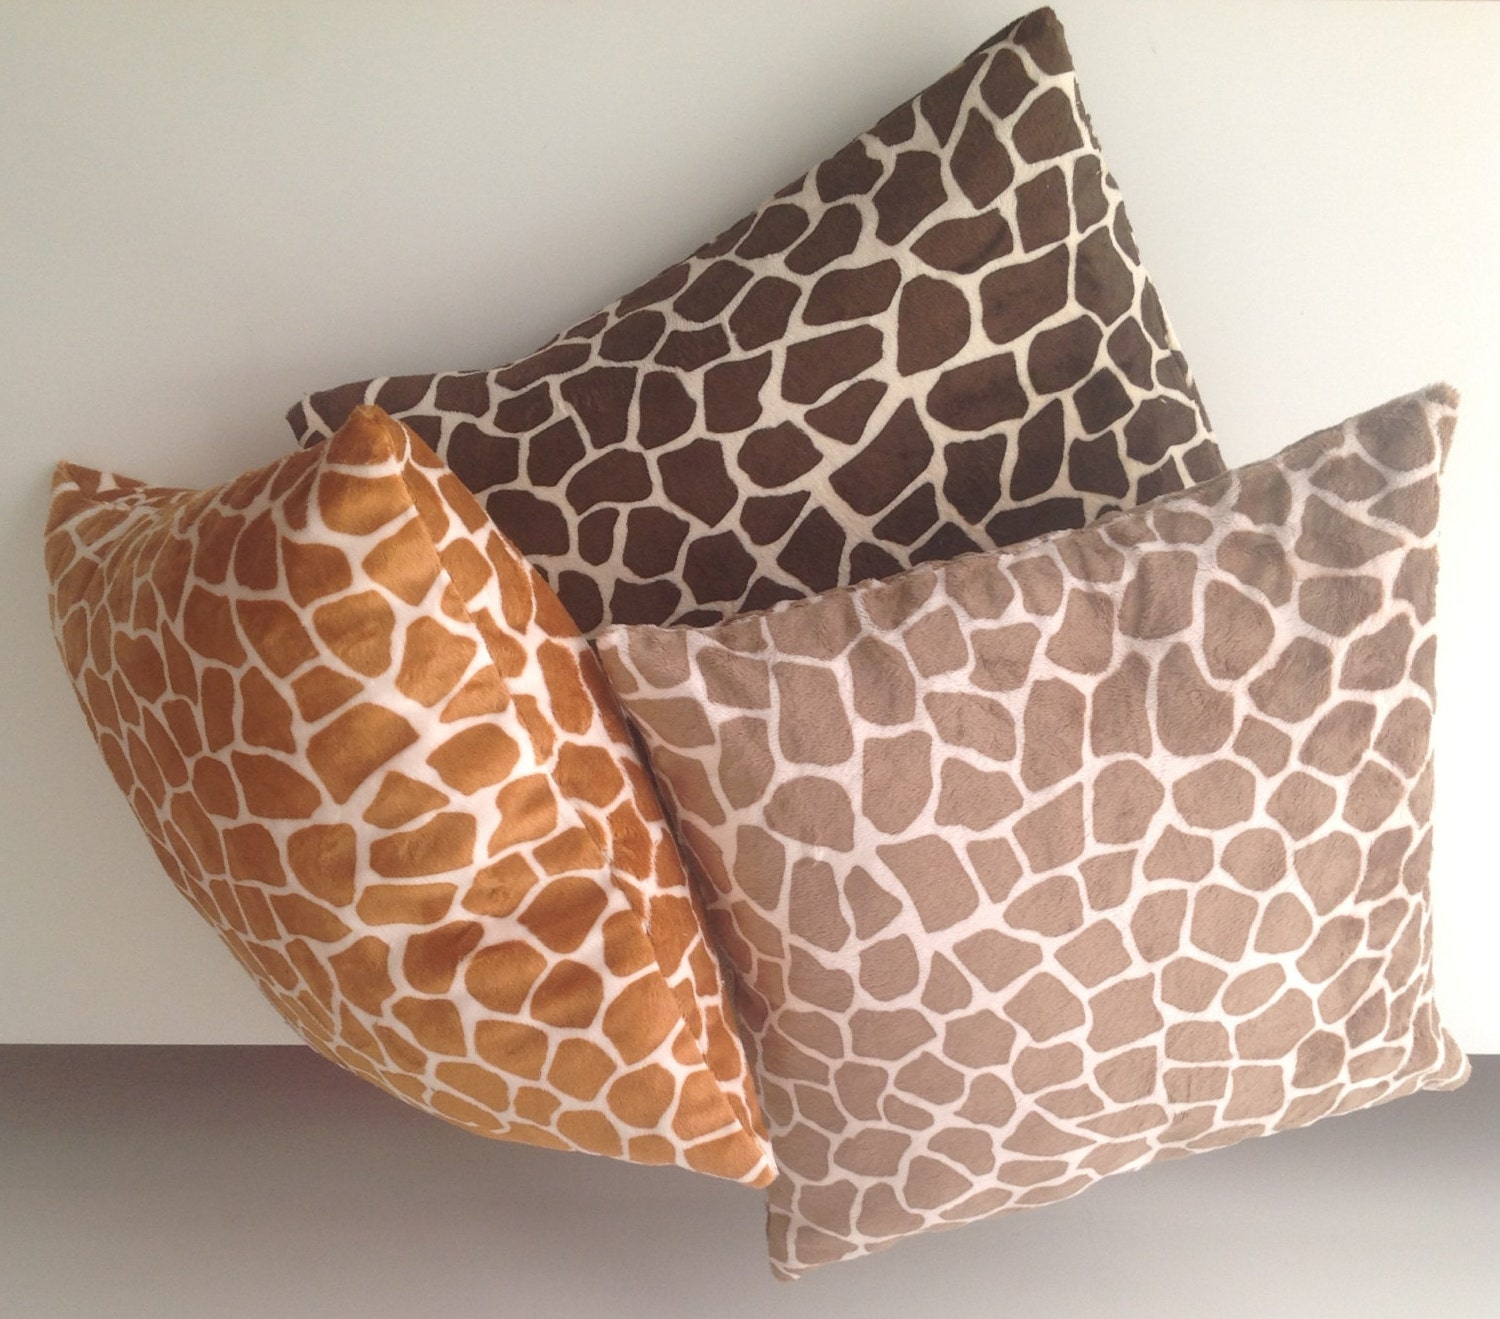 Giraffe Decorative Pillow : Neck pillow Home decor pillow Giraffe Neck by SimplyLifeHandmade